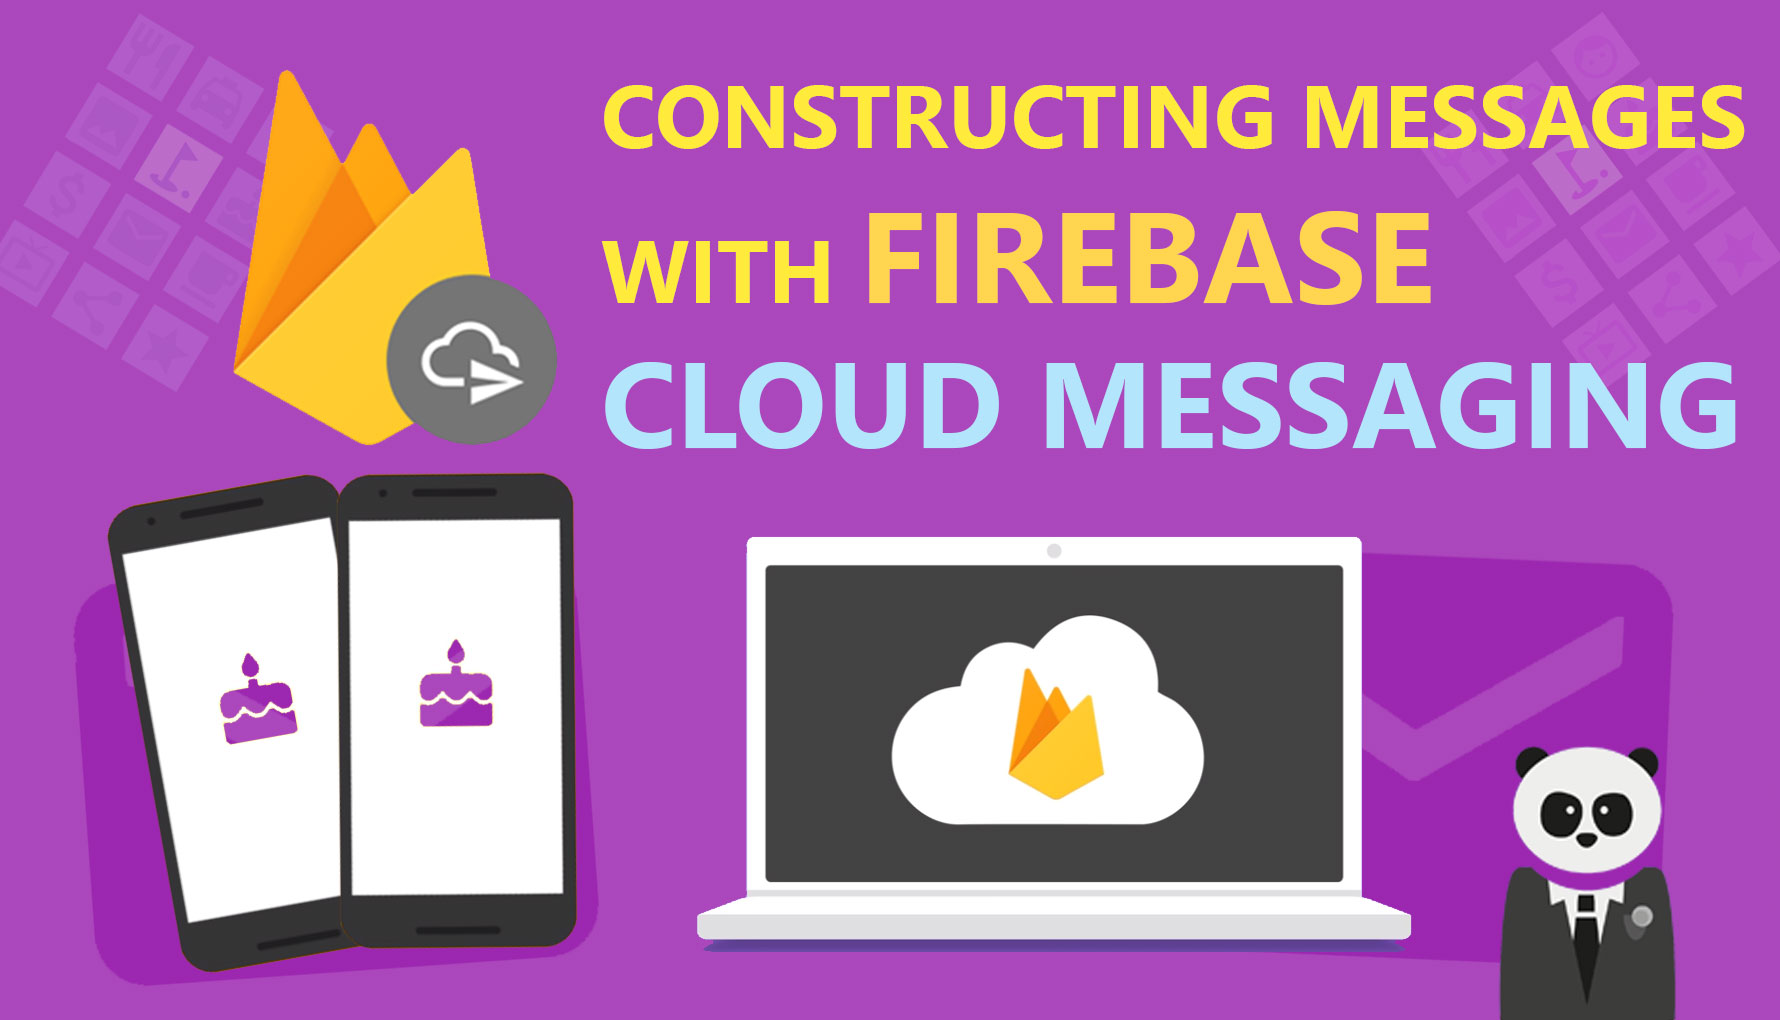 Constructing POST HTTP Firebase Cloud Messages for dummies and YOU